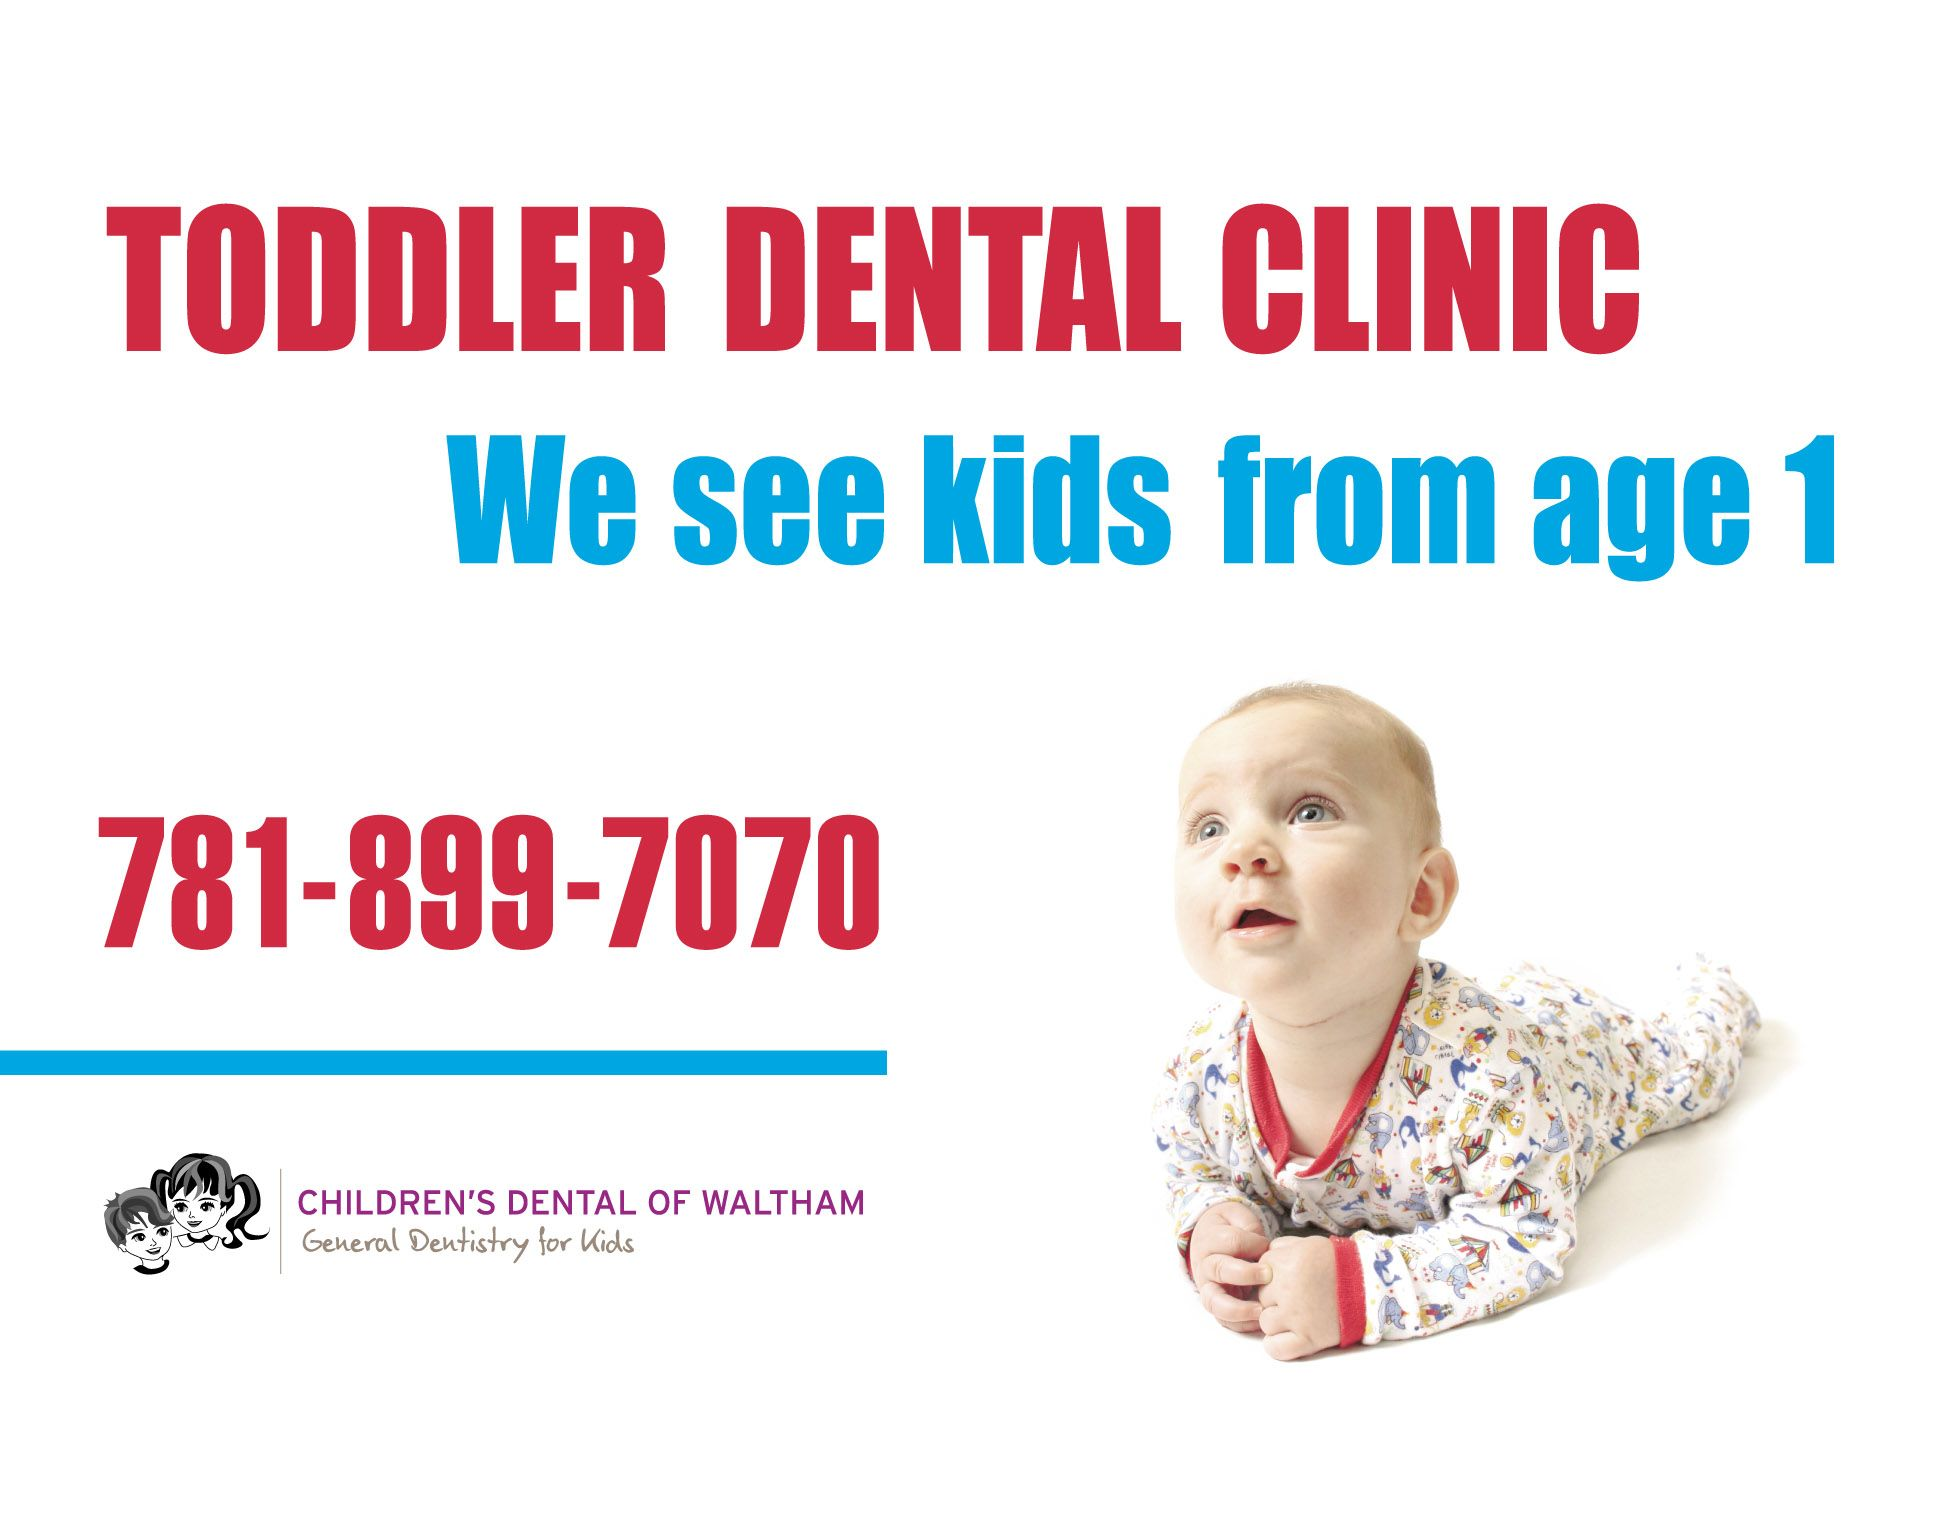 Toddler Dental Clinic